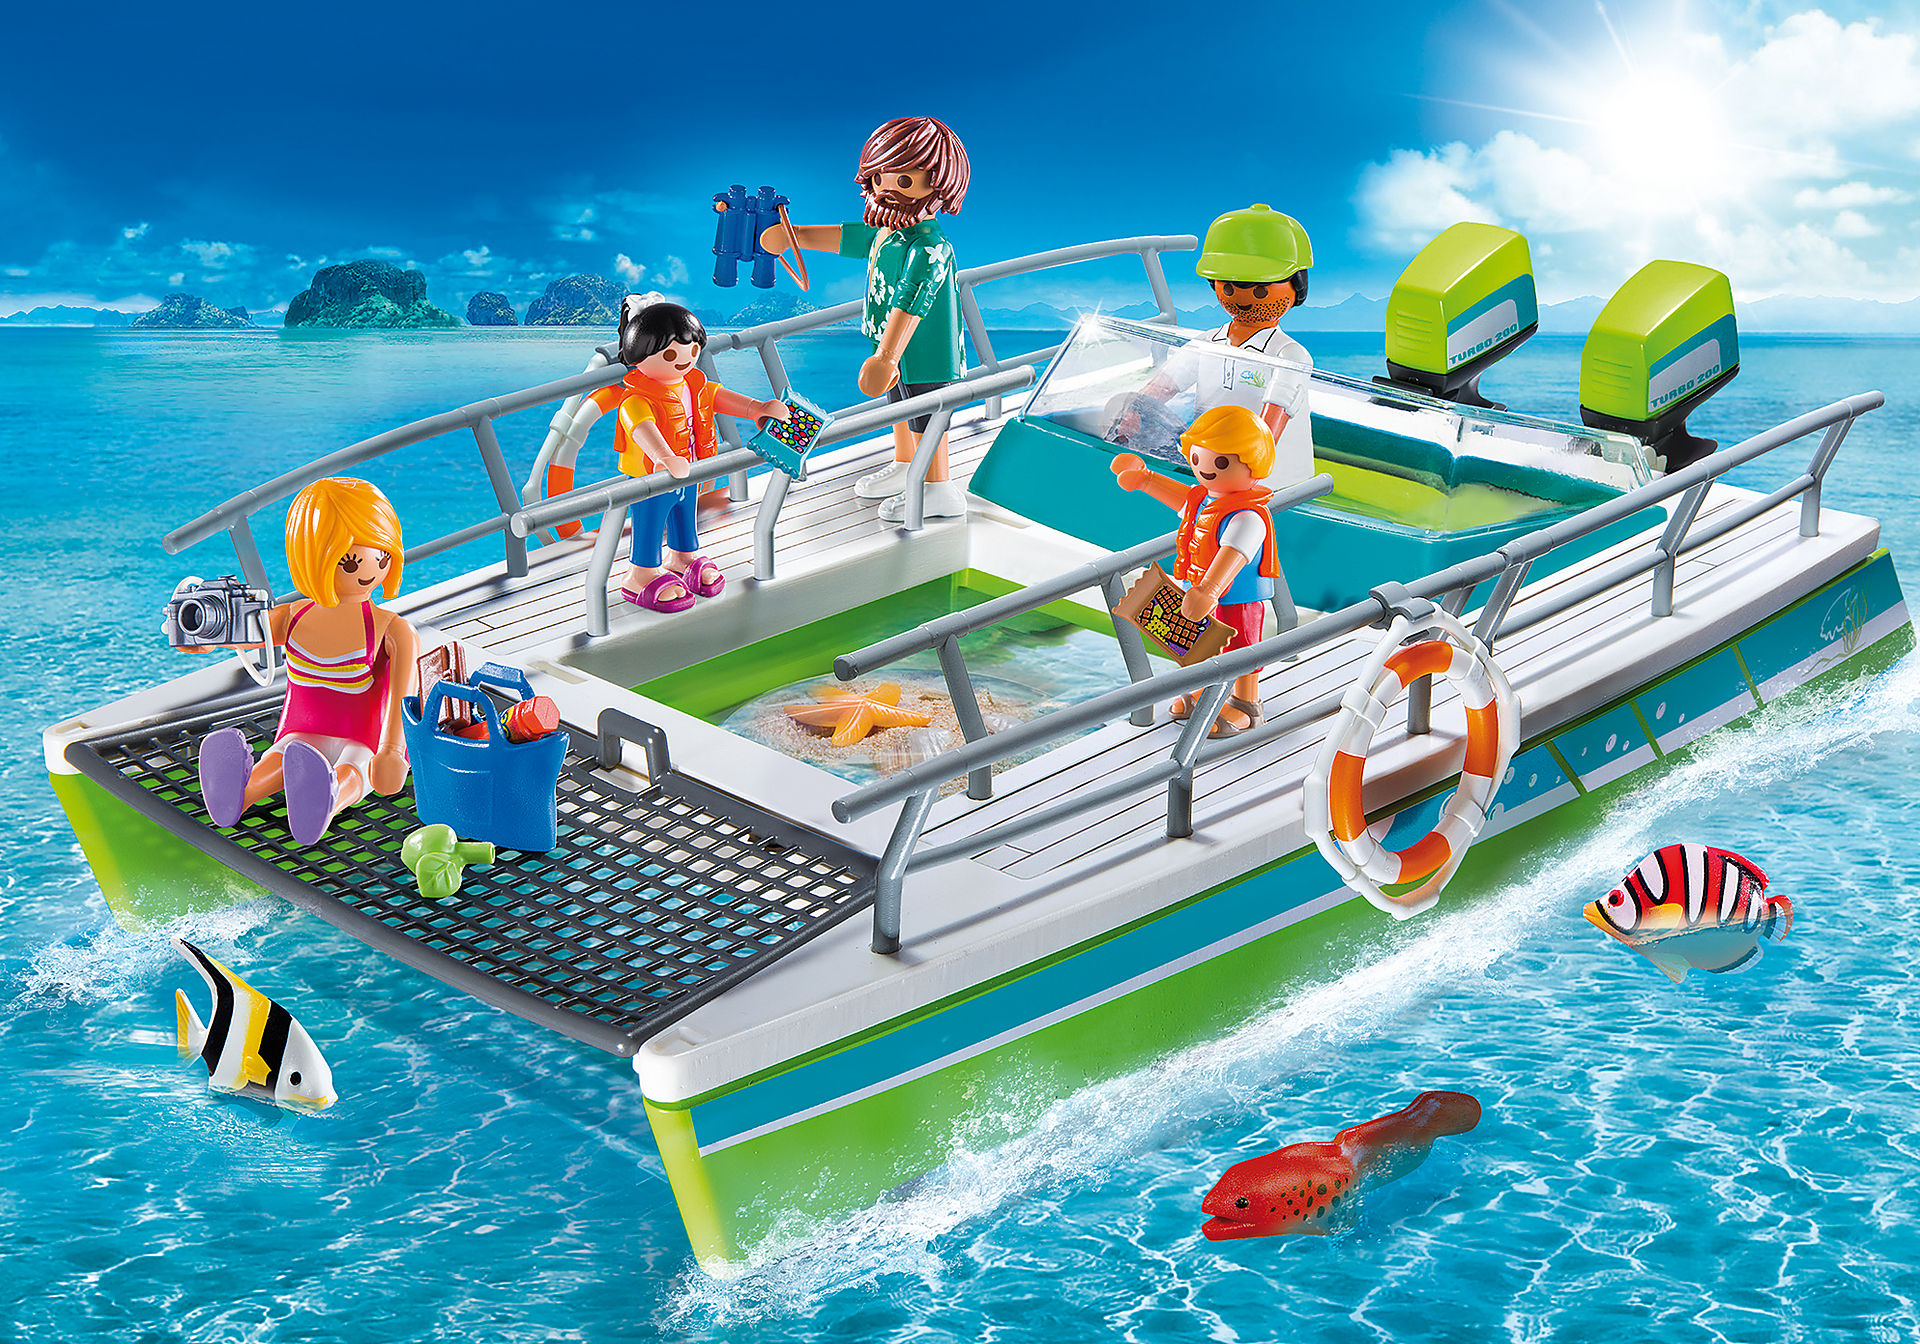 http://media.playmobil.com/i/playmobil/9233_product_detail/Glass-Bottom Boat with Underwater Motor